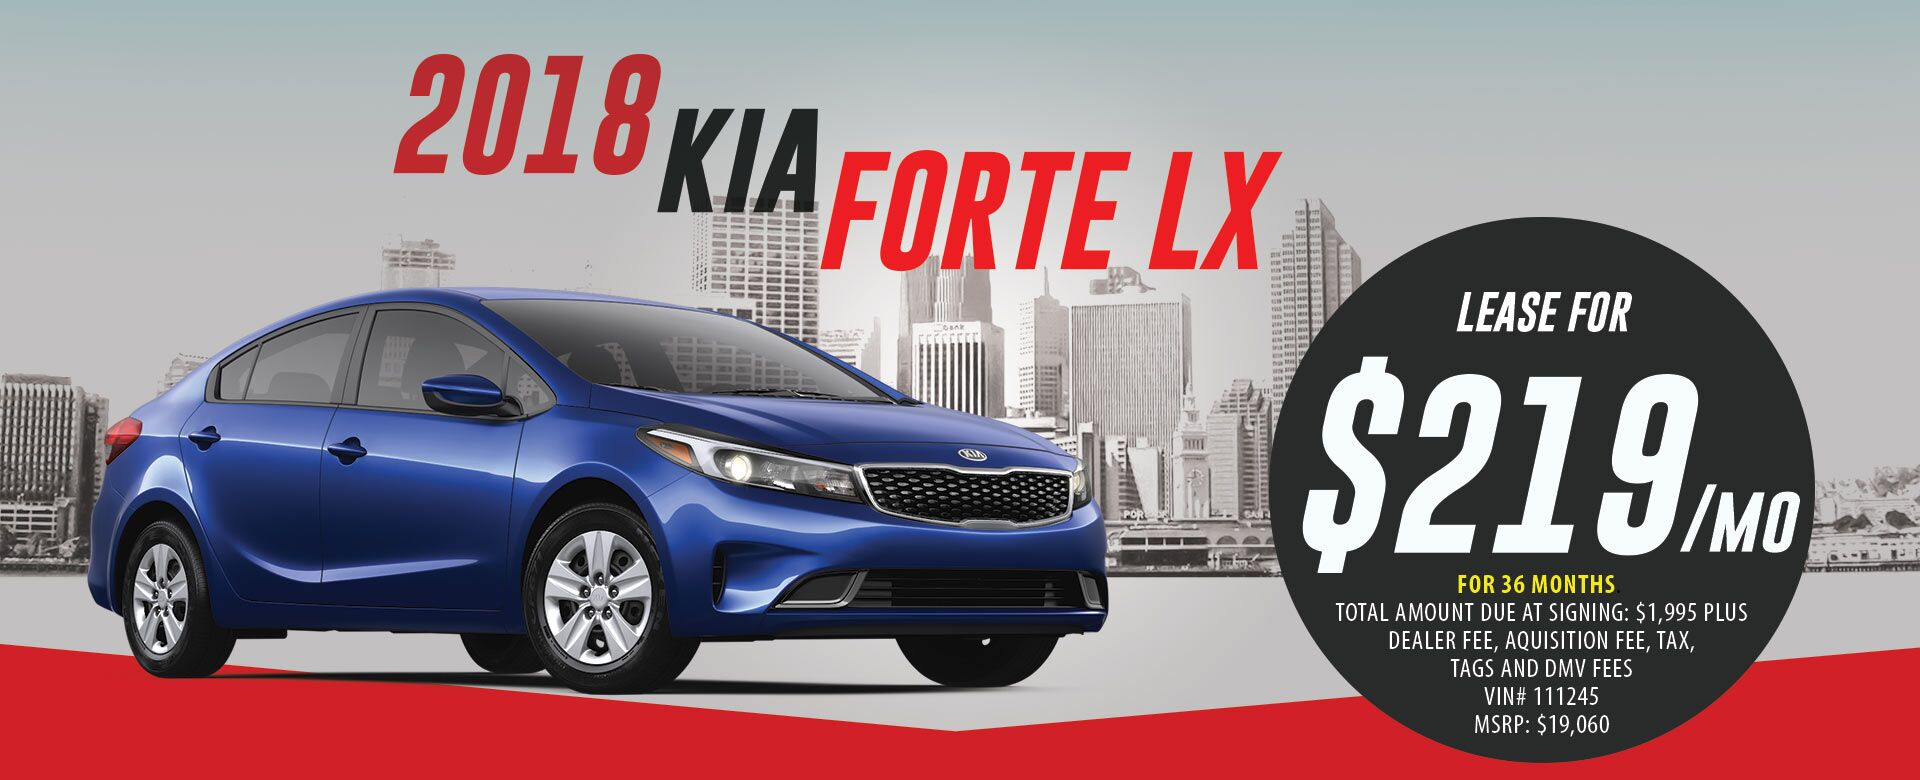 Lease a 2018 Kia Forte LX for $219/month for 36 months